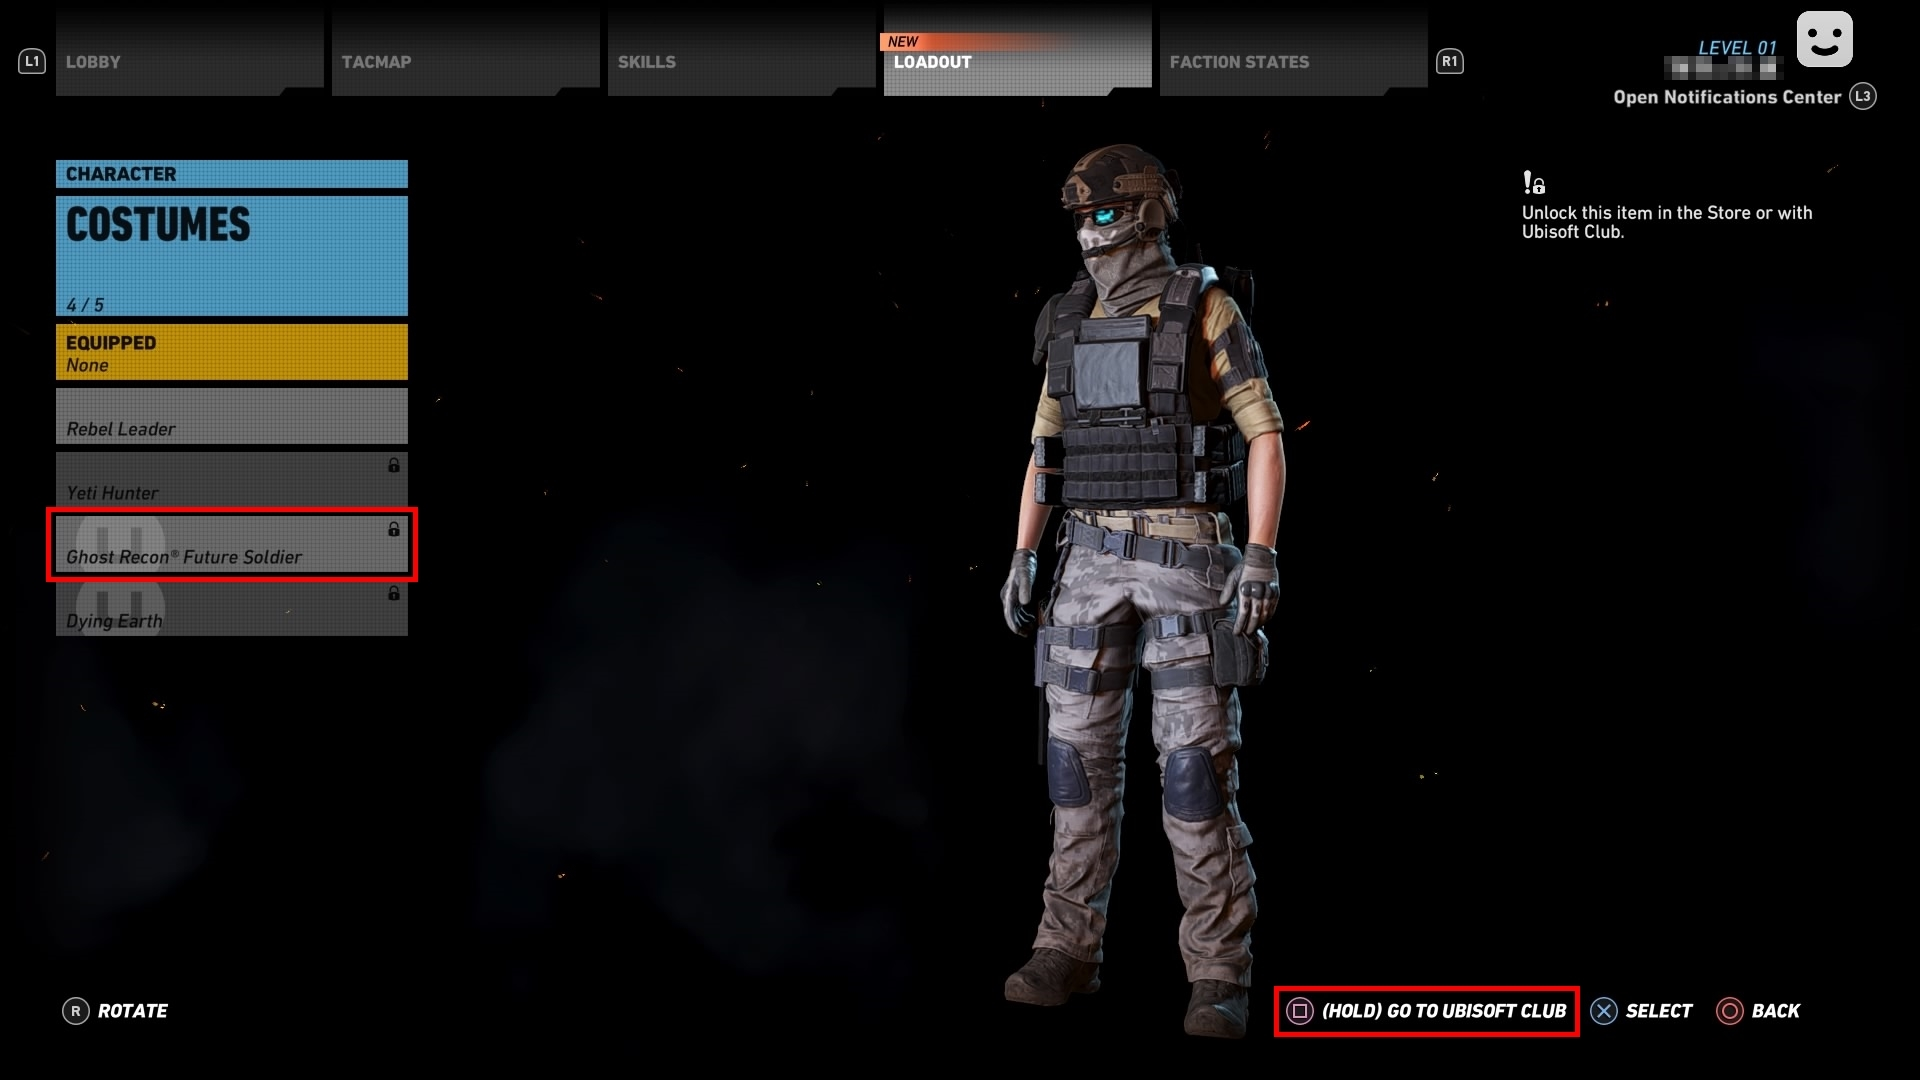 Accessing costumes from other Ubisoft games in Ghost Recon Wildlands